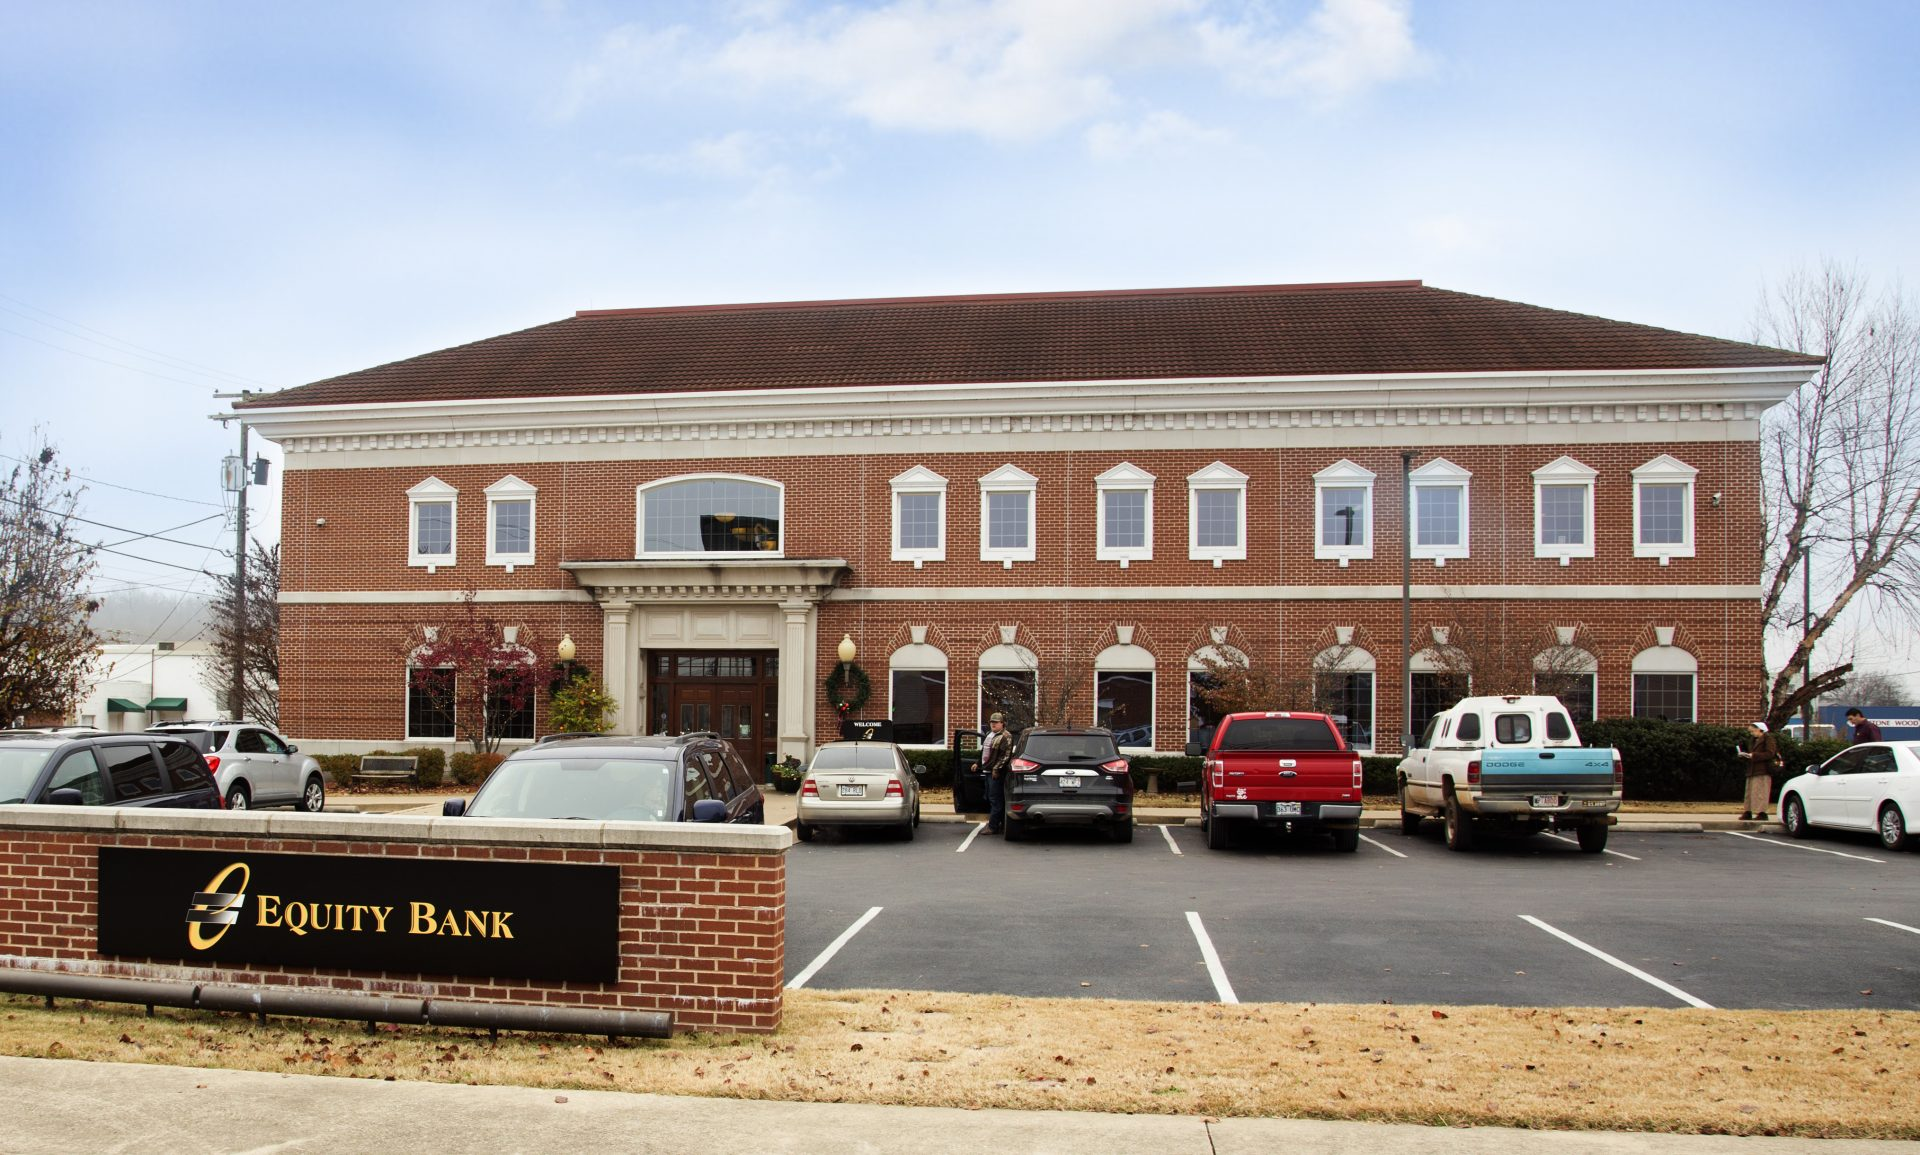 Equity Bank Harris Downtown branch exterior.